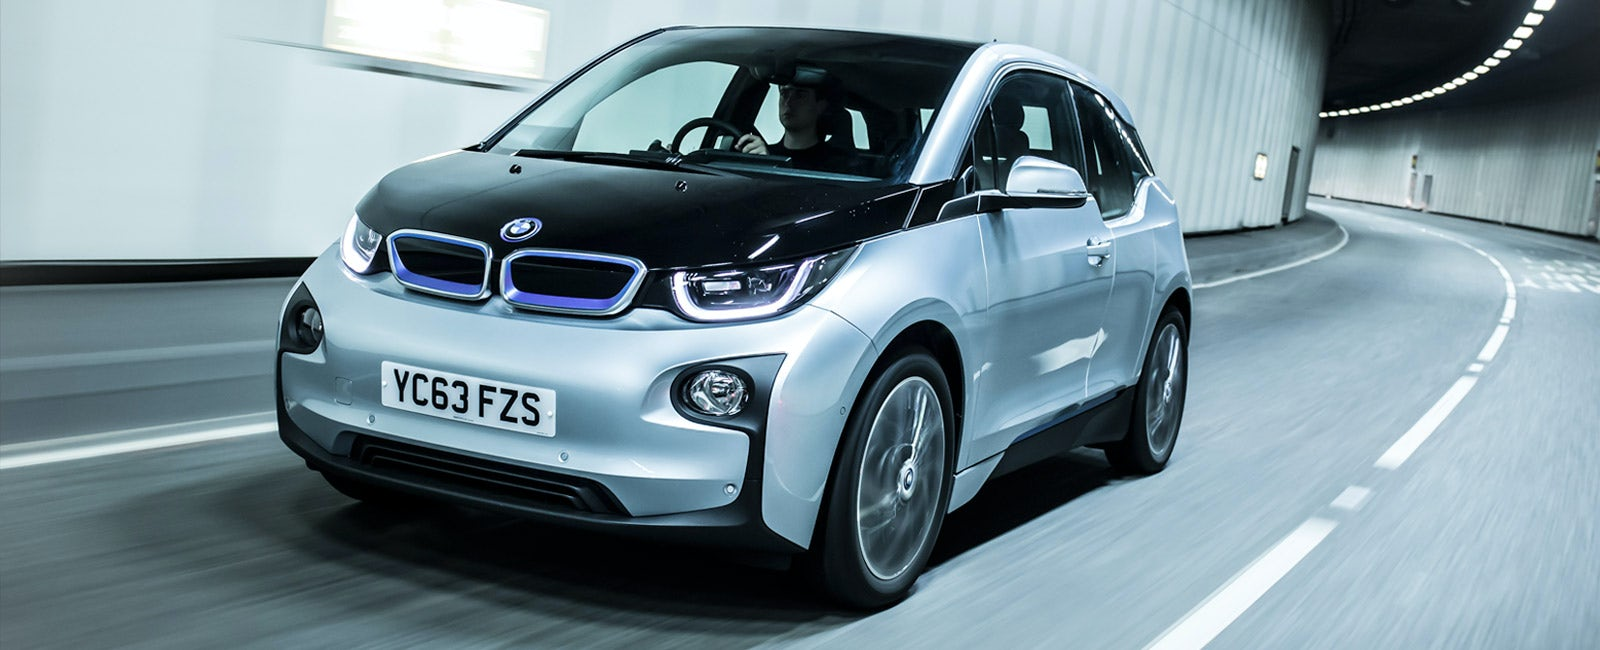 Bmw s first mass produced electric vehicle the i3 is available with a range extending petrol engine the small two cylinder motorcycle derived unit has